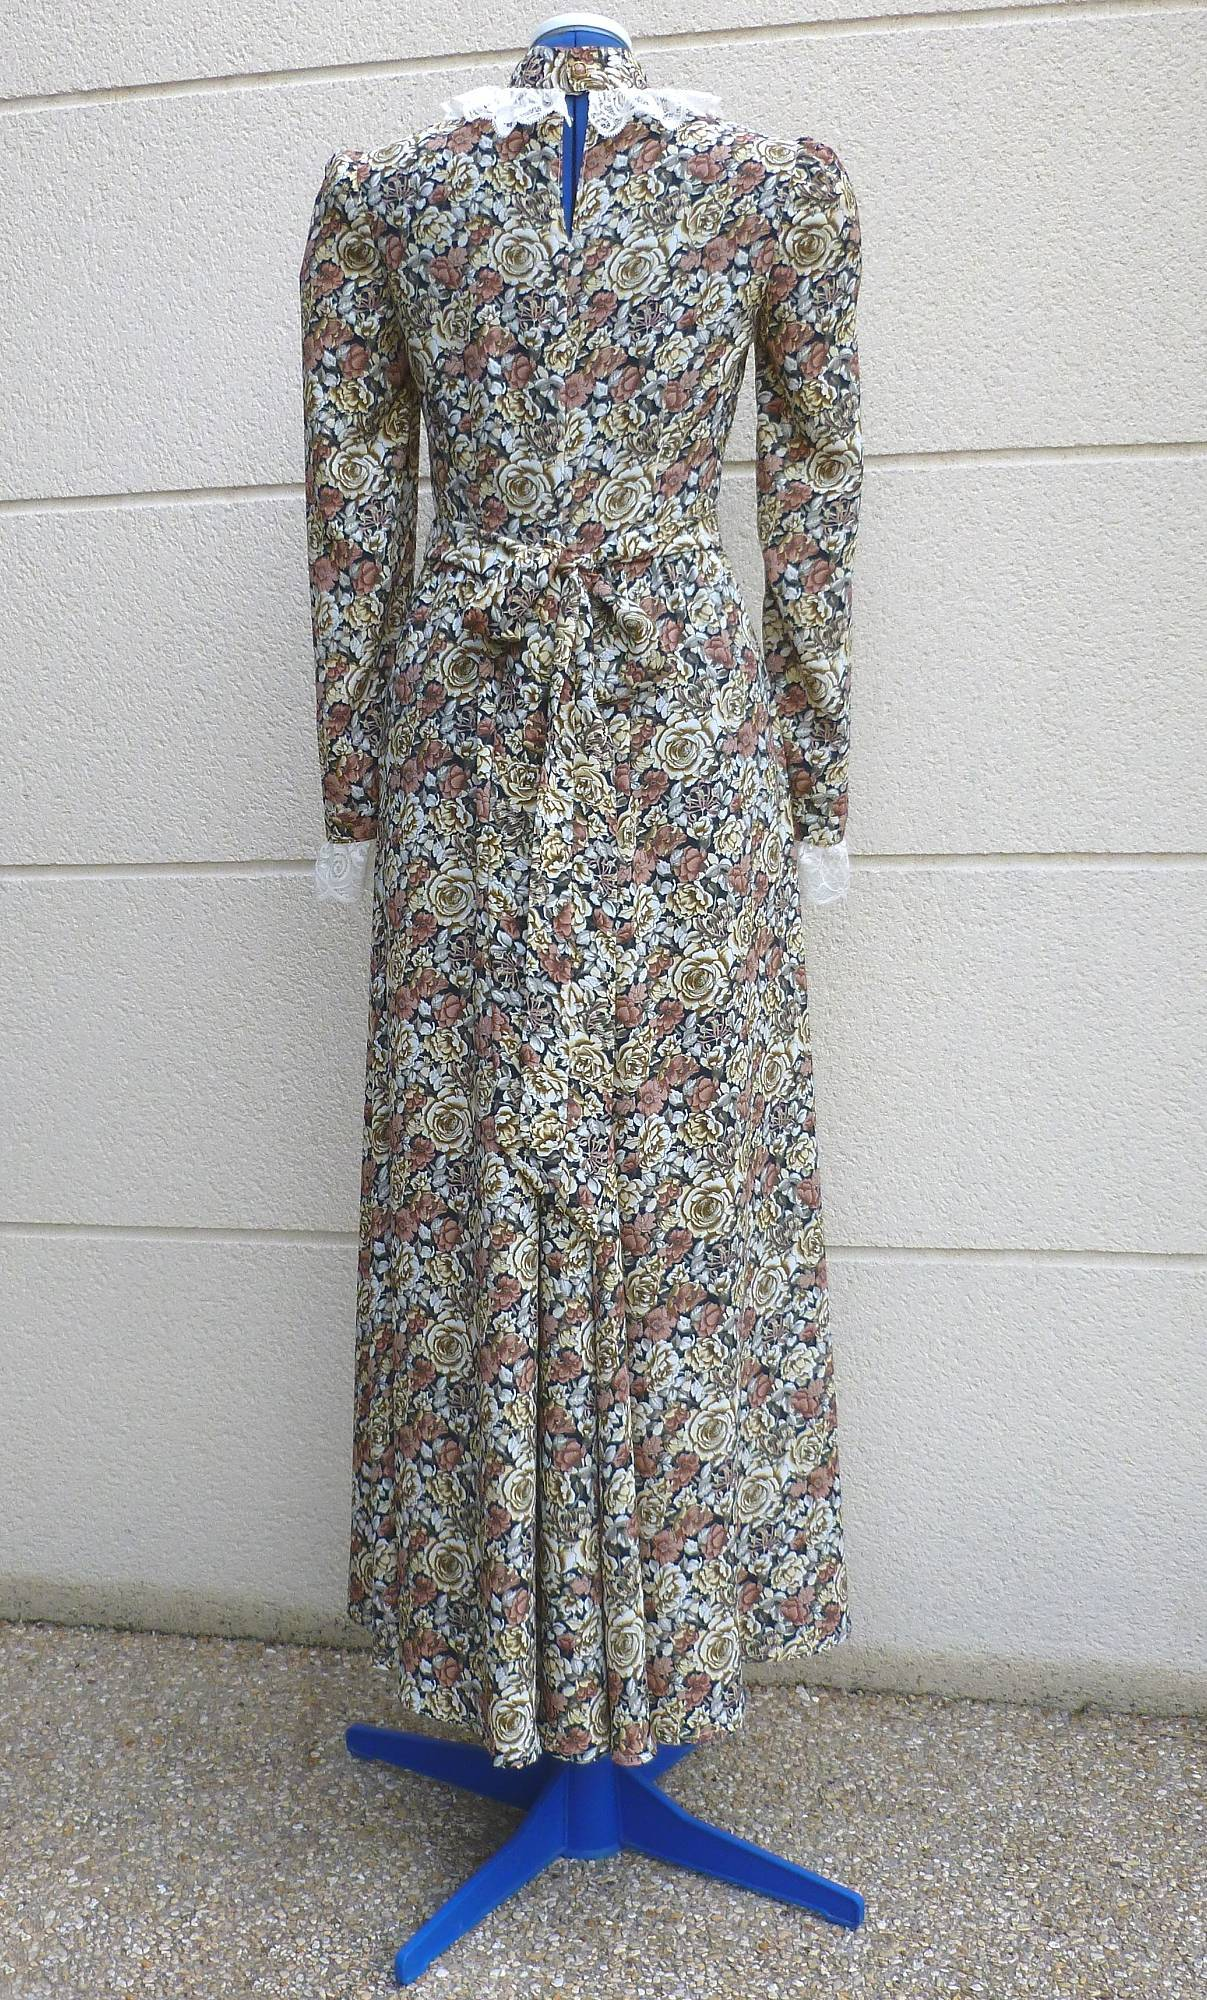 Robe-1900-taille-38-3